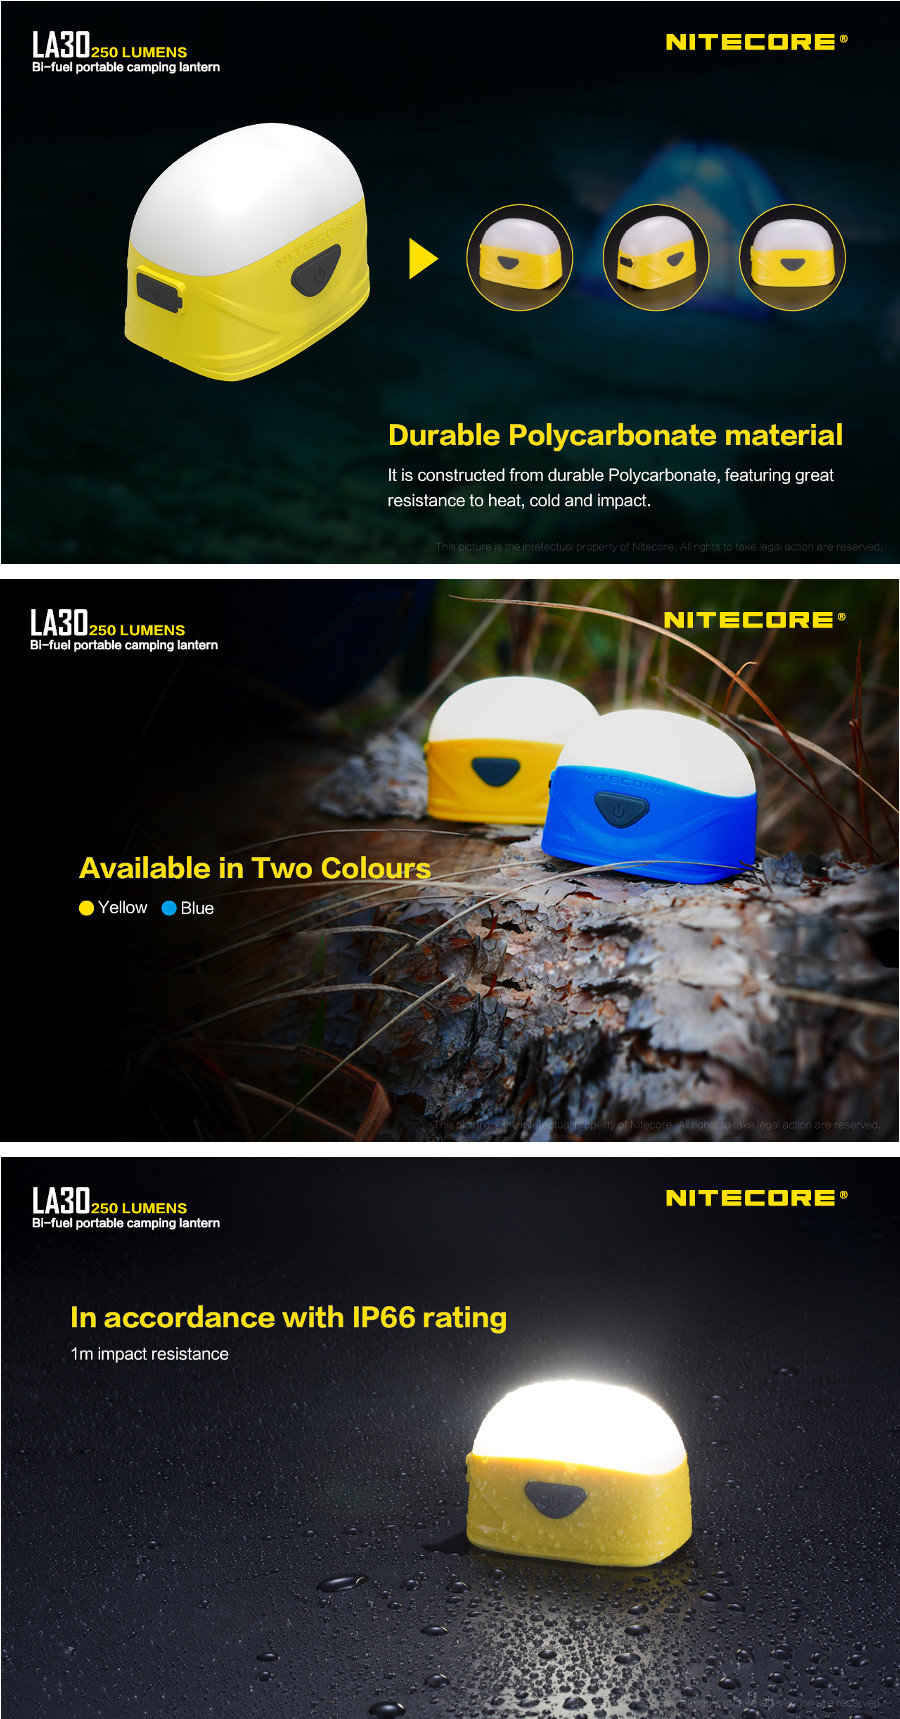 Nitecore LA30 250LM 7Modes White & Red Dimming Bi-fuel USB Mini Camping Lantern with Hanging Hole AA